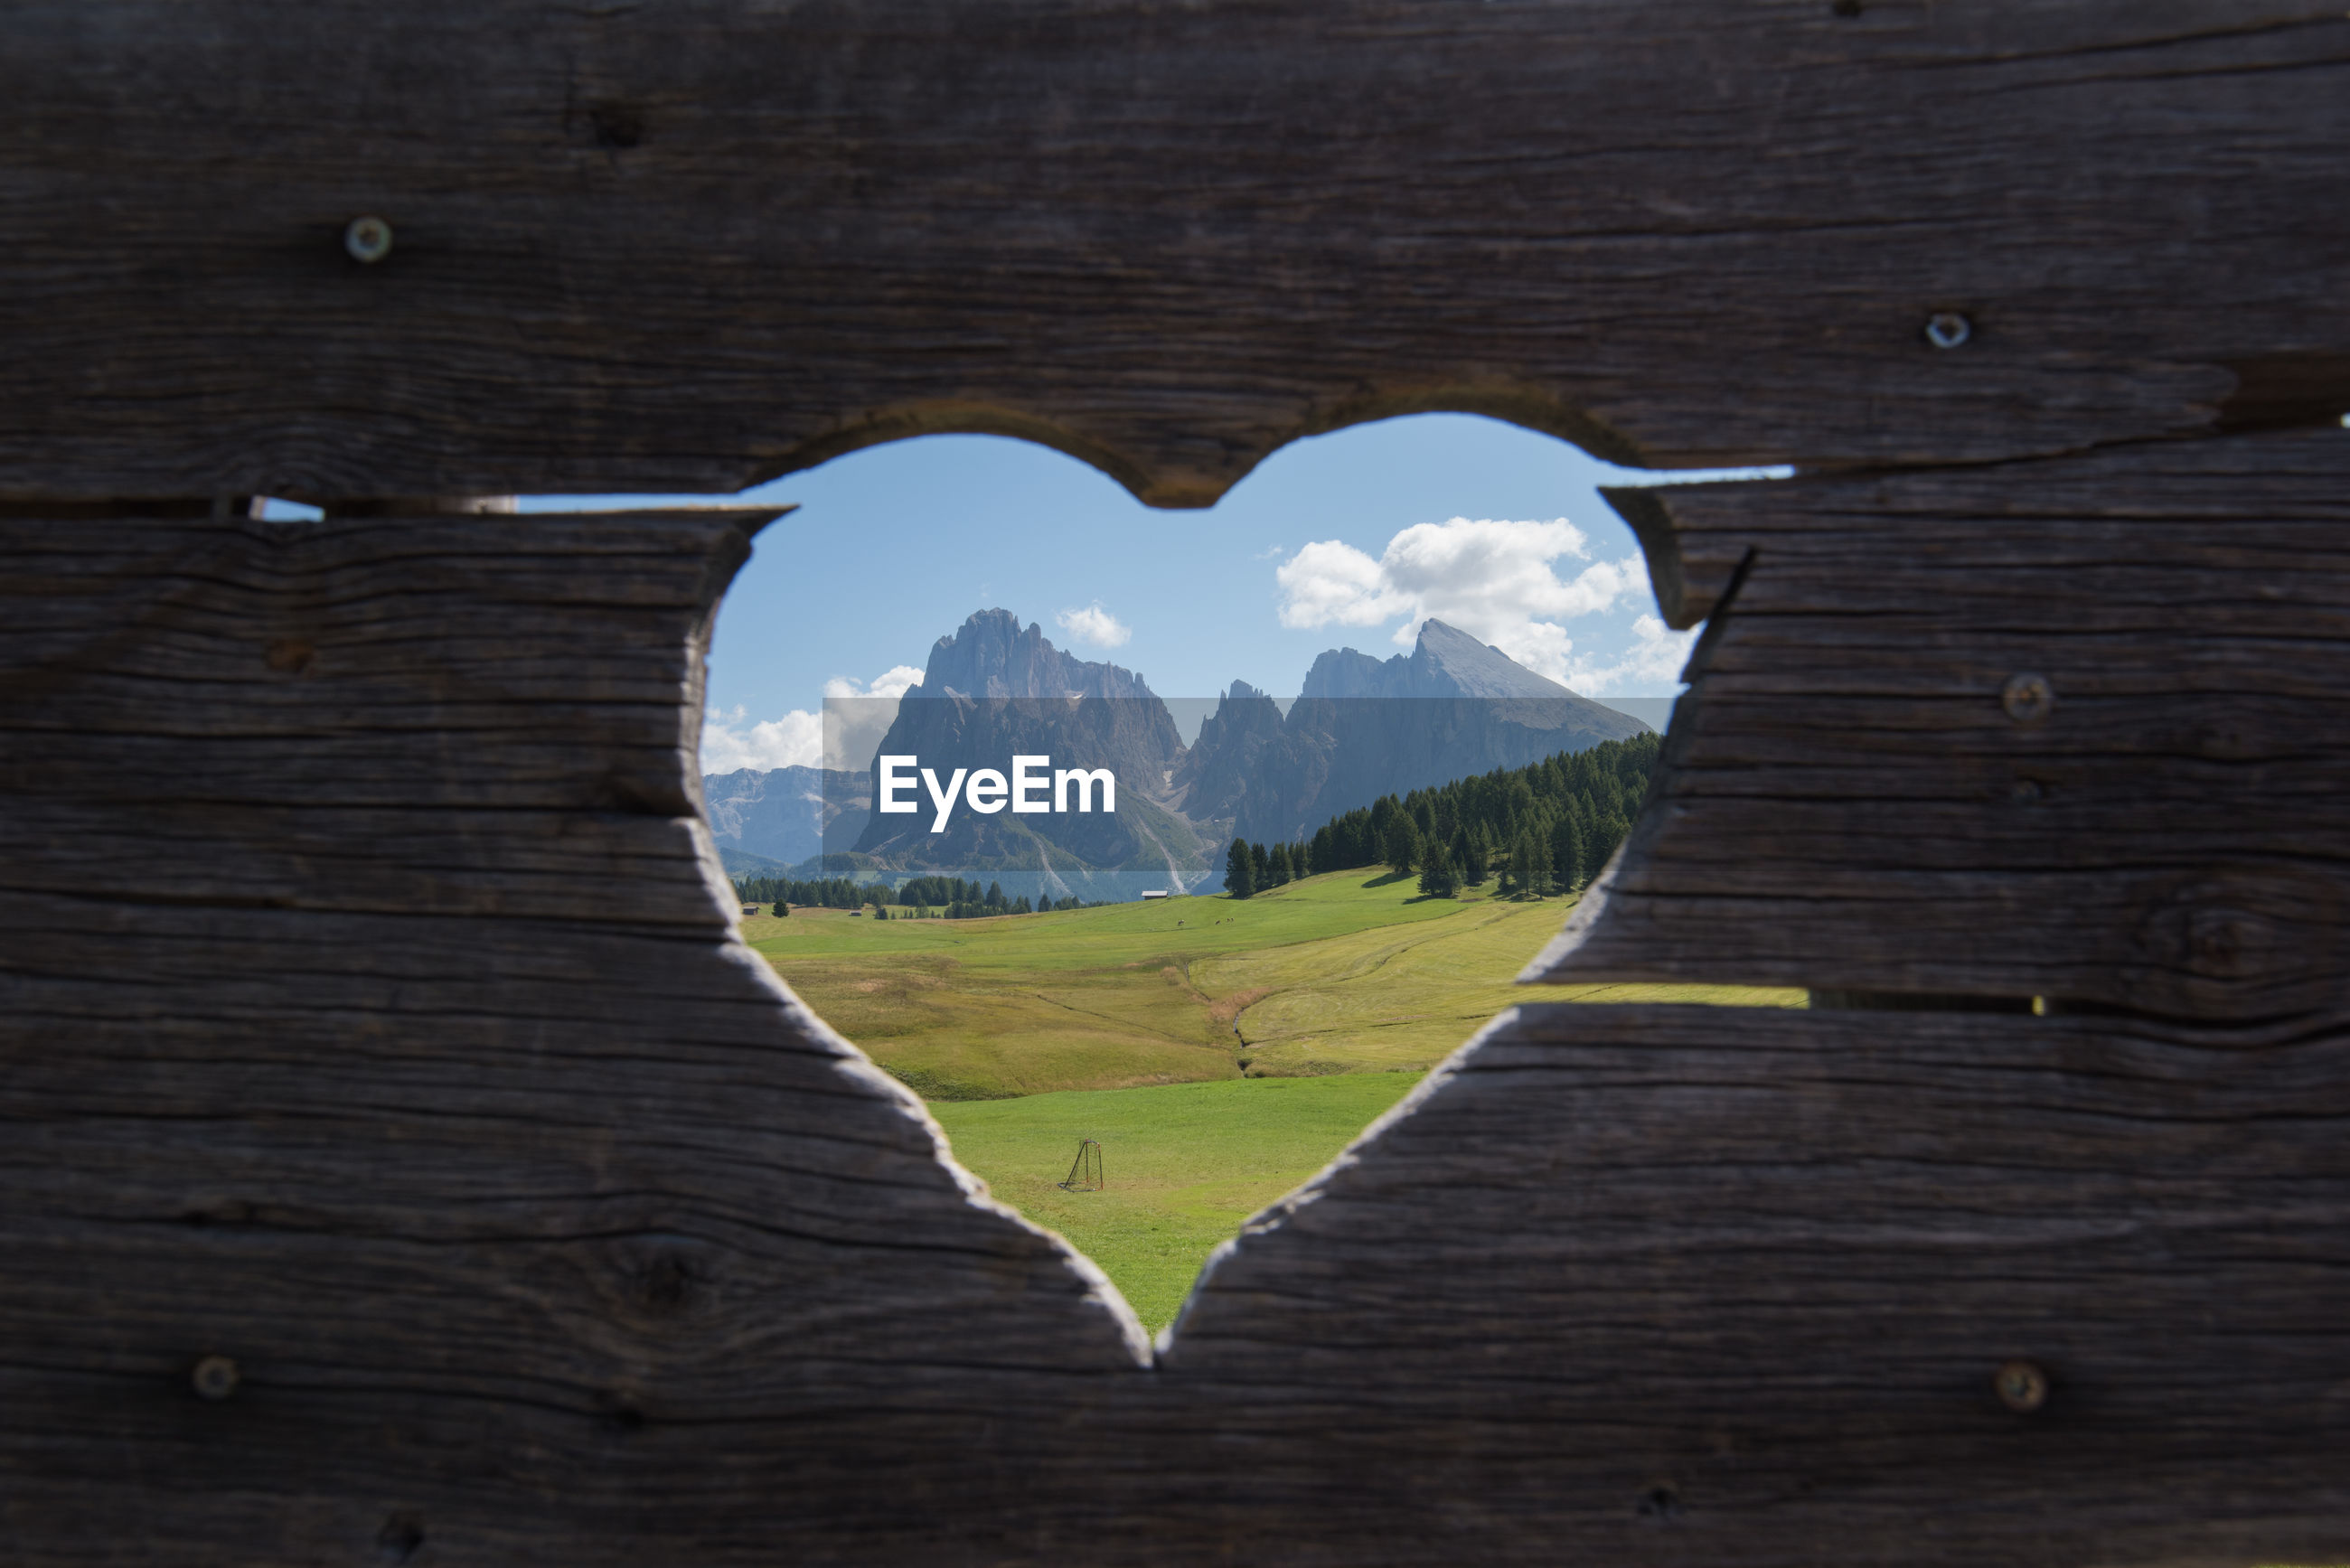 SCENIC VIEW OF LANDSCAPE SEEN THROUGH HOLE IN WOODEN WALL